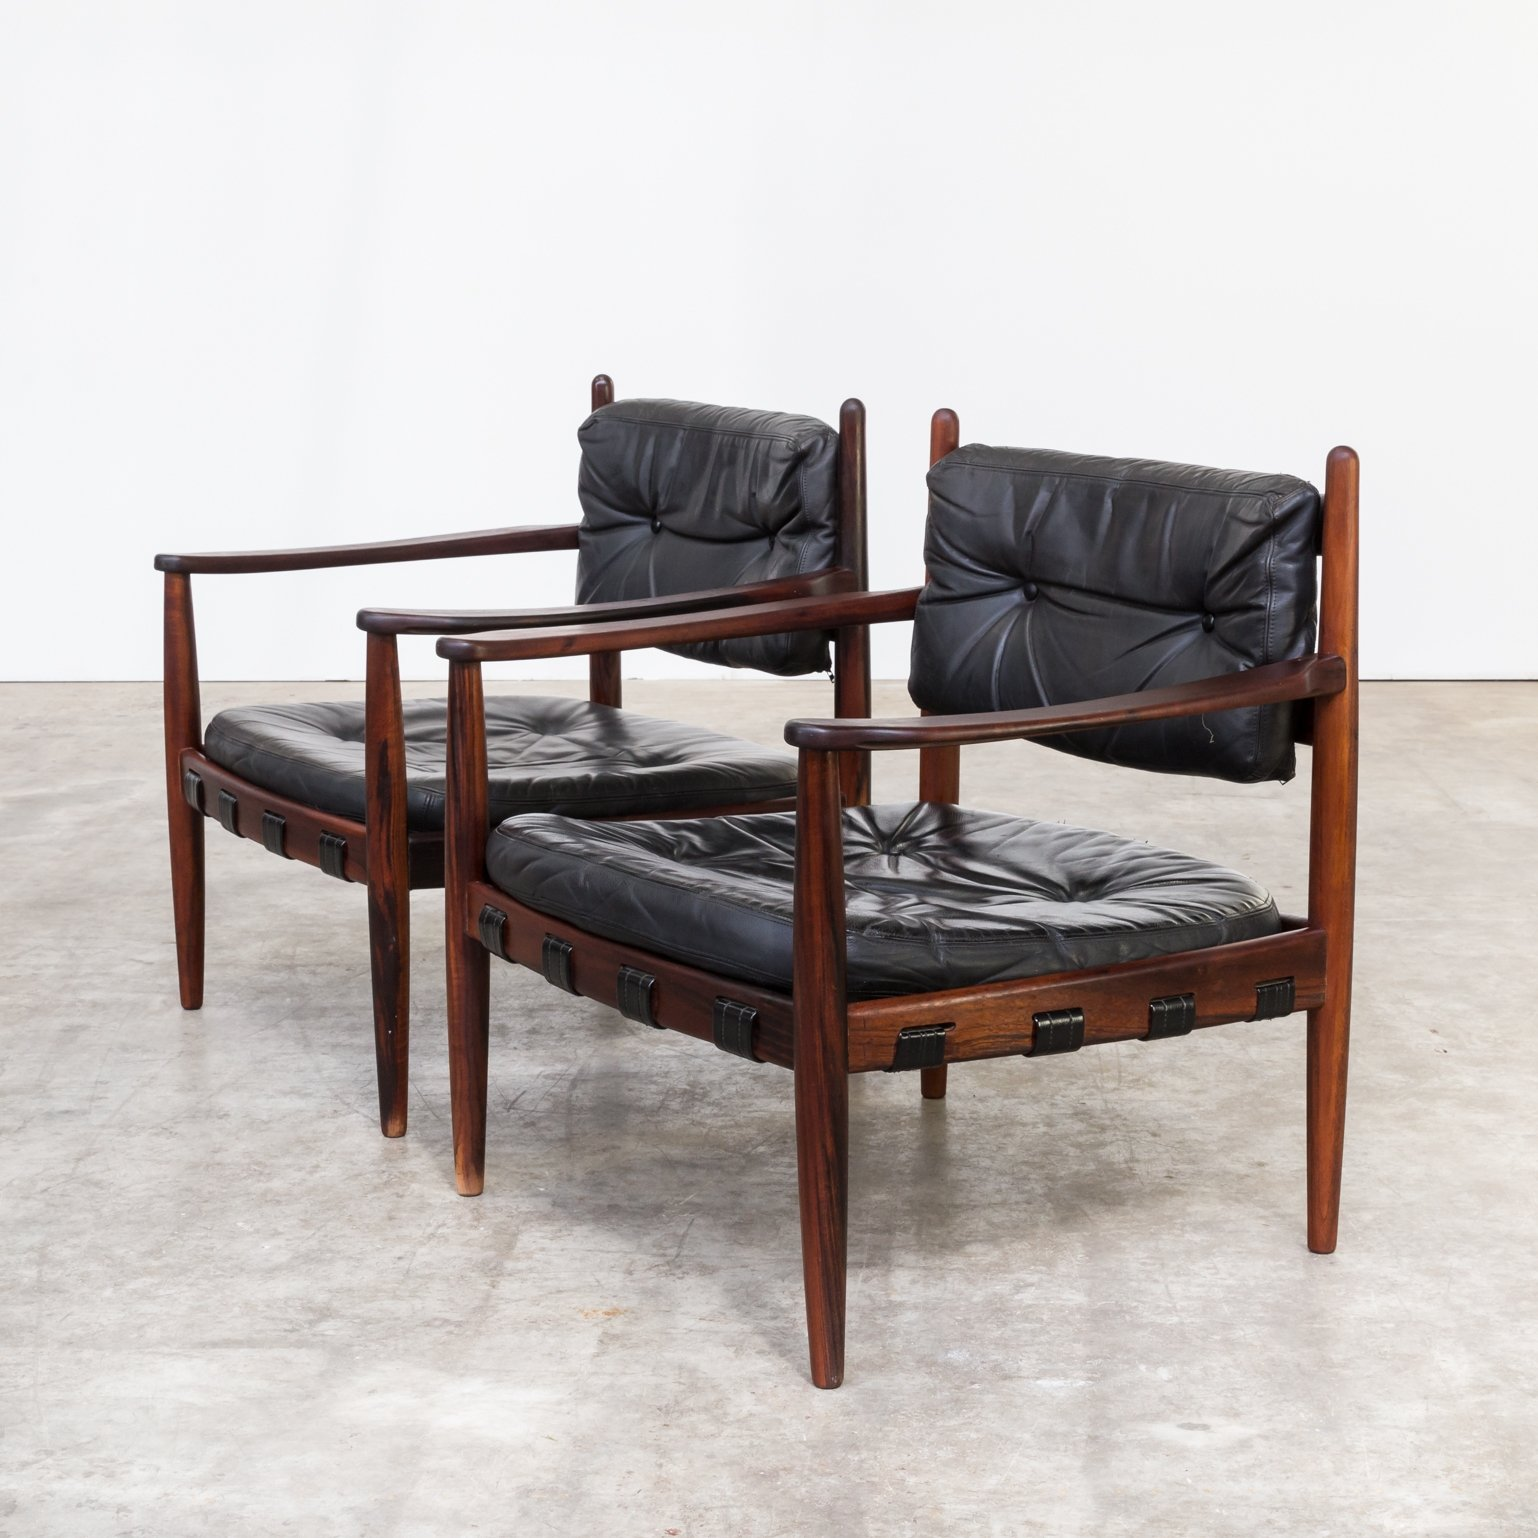 Pair of lounge chairs by Arne Norell for Arne Norell AB 1950s